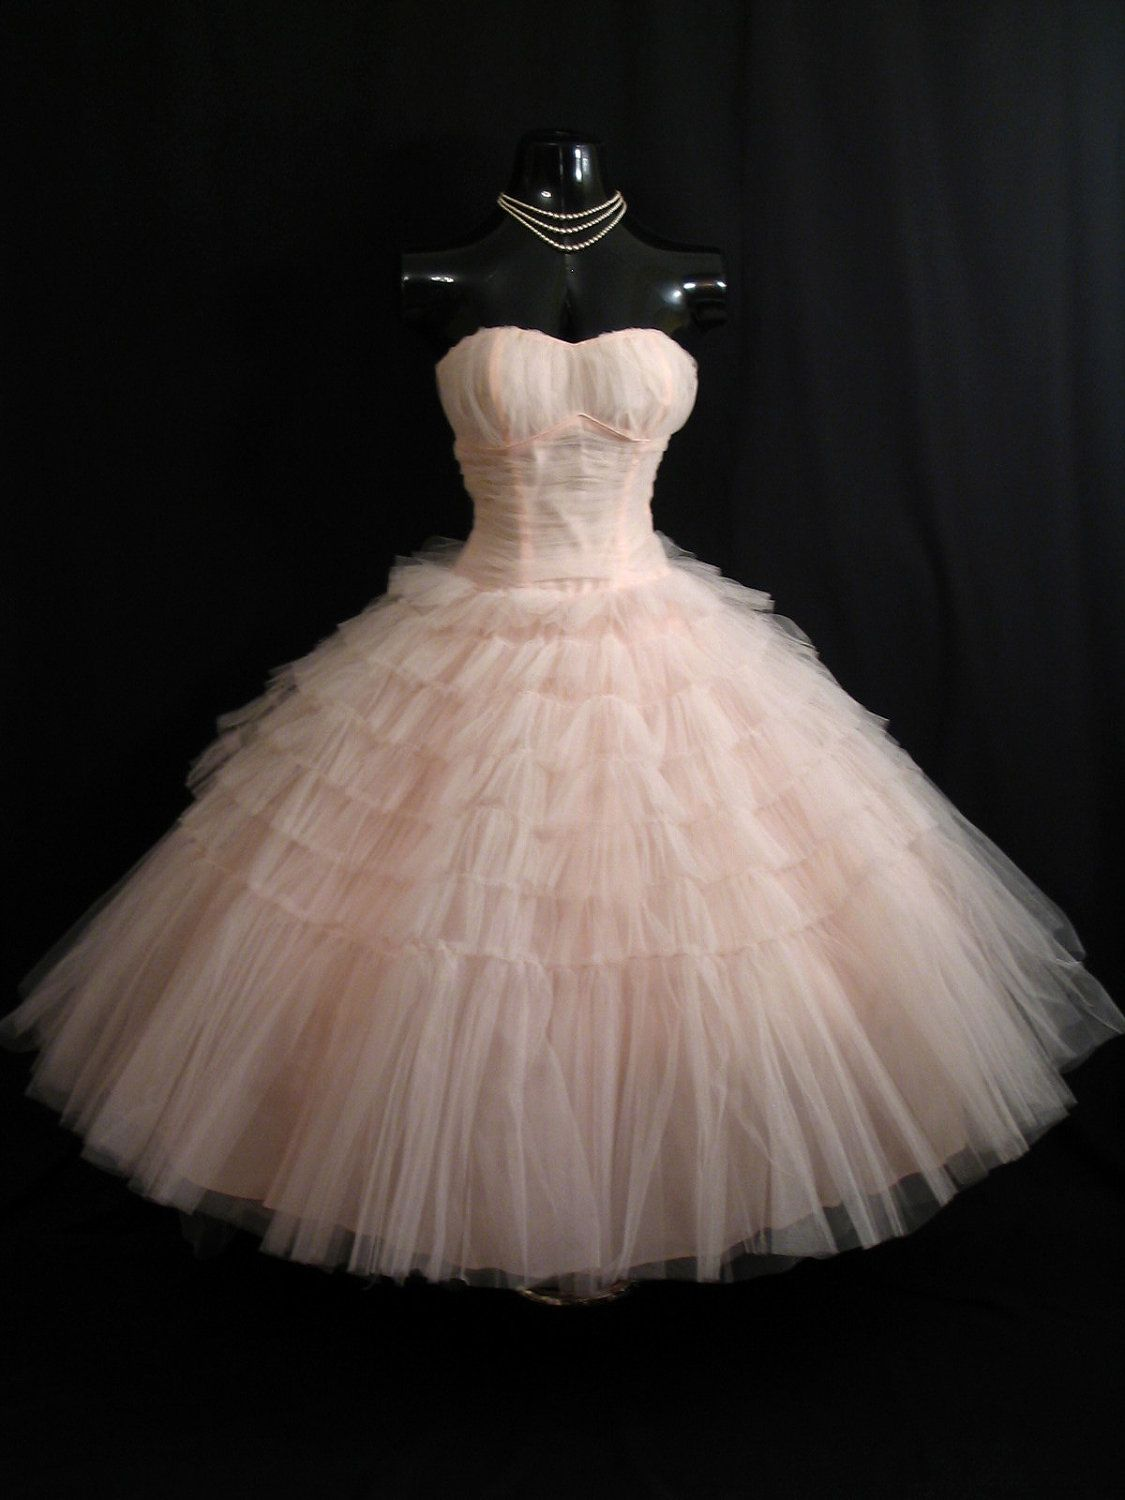 Vintage 1950's Pink Tiered Layered Circle Skirt Party Prom Dress